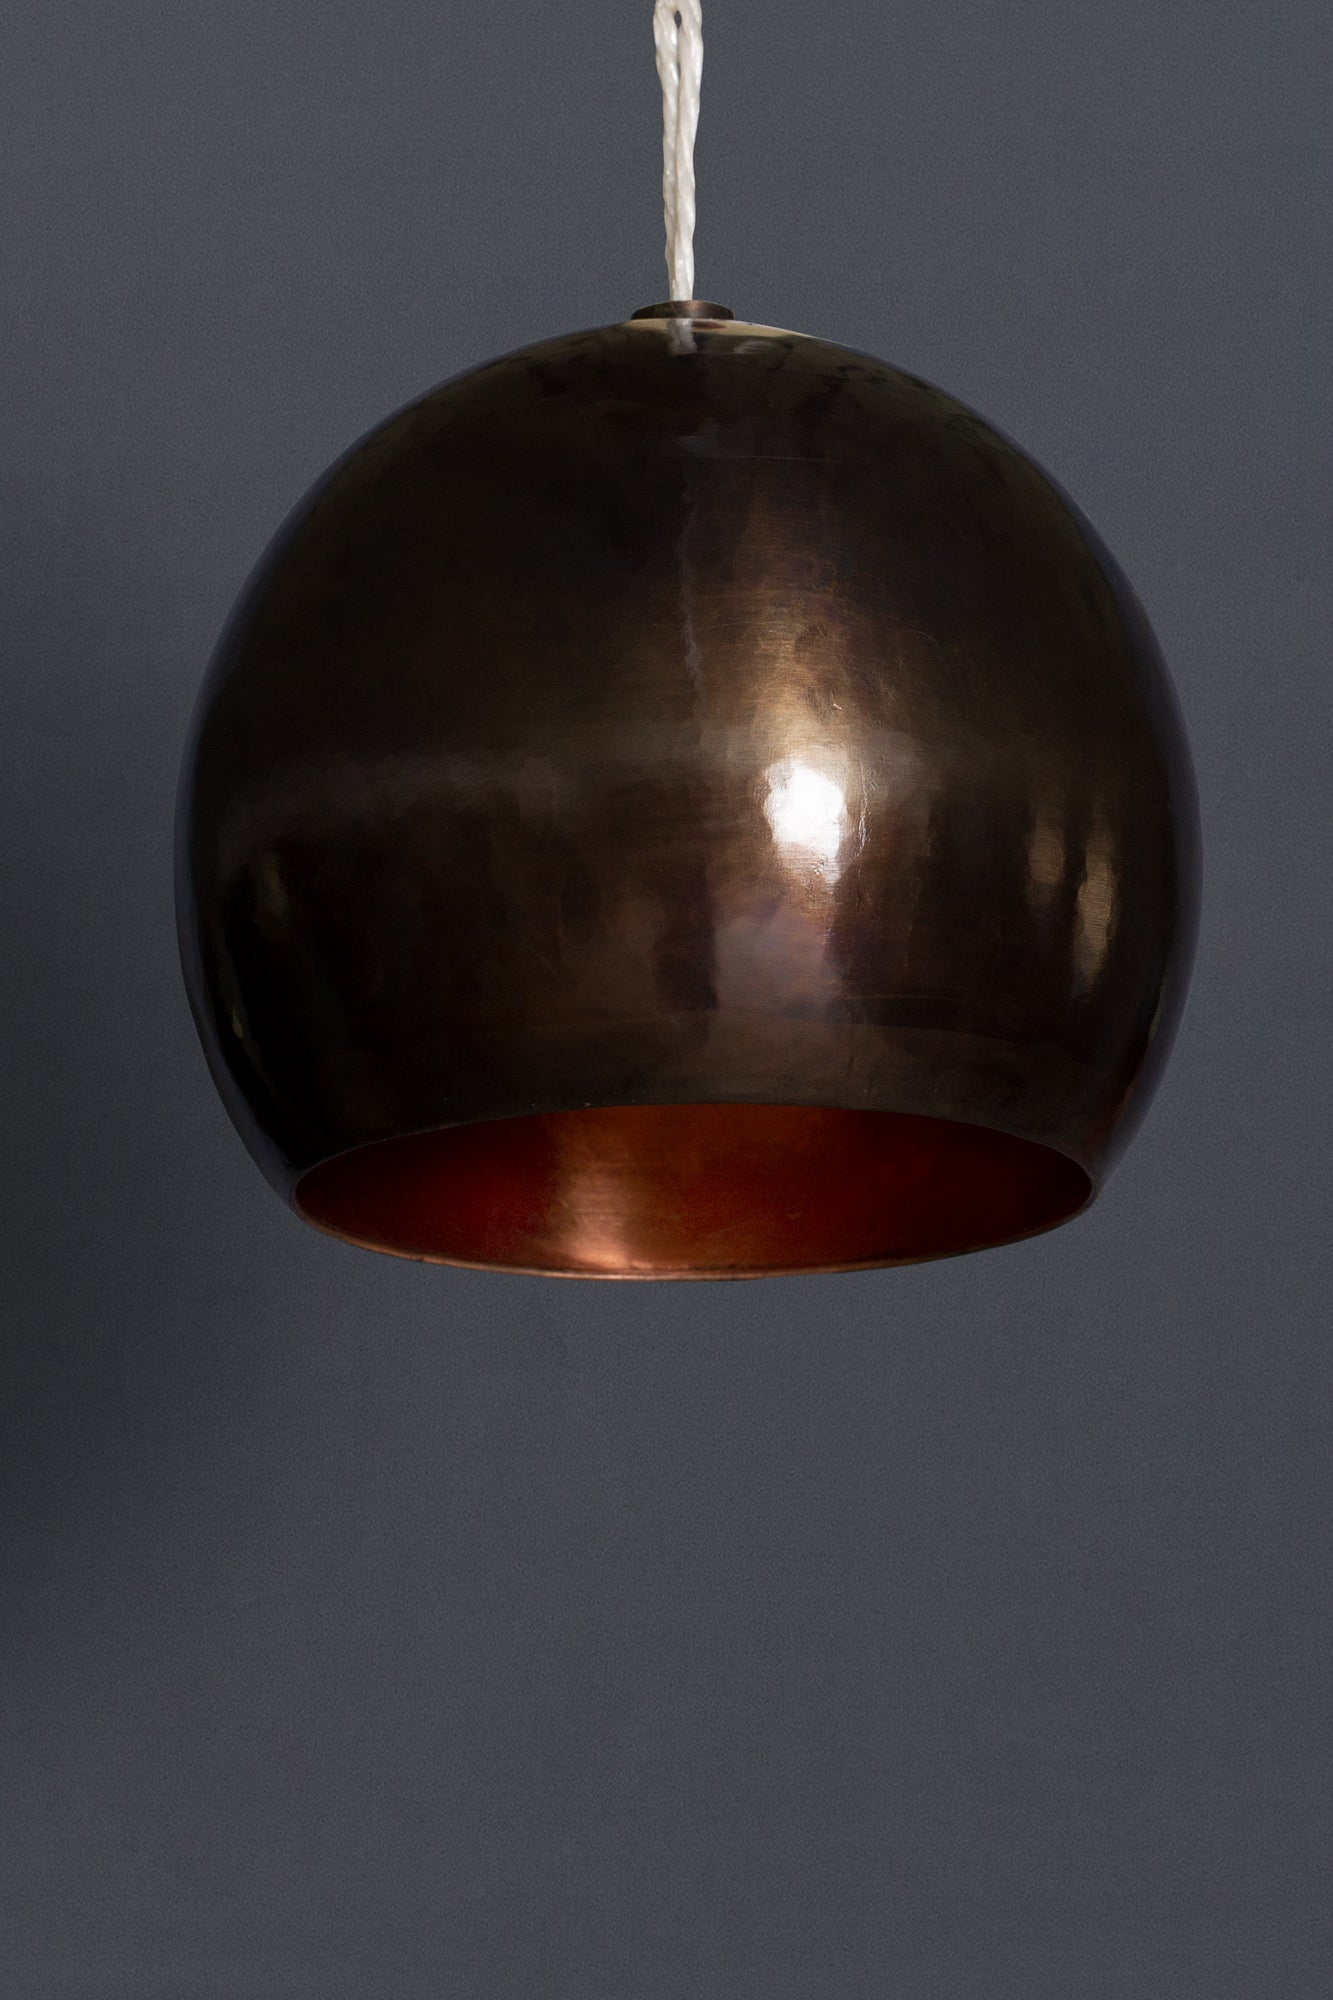 Small Bronze Hammered Pendant Light with a Polished Copper Interior